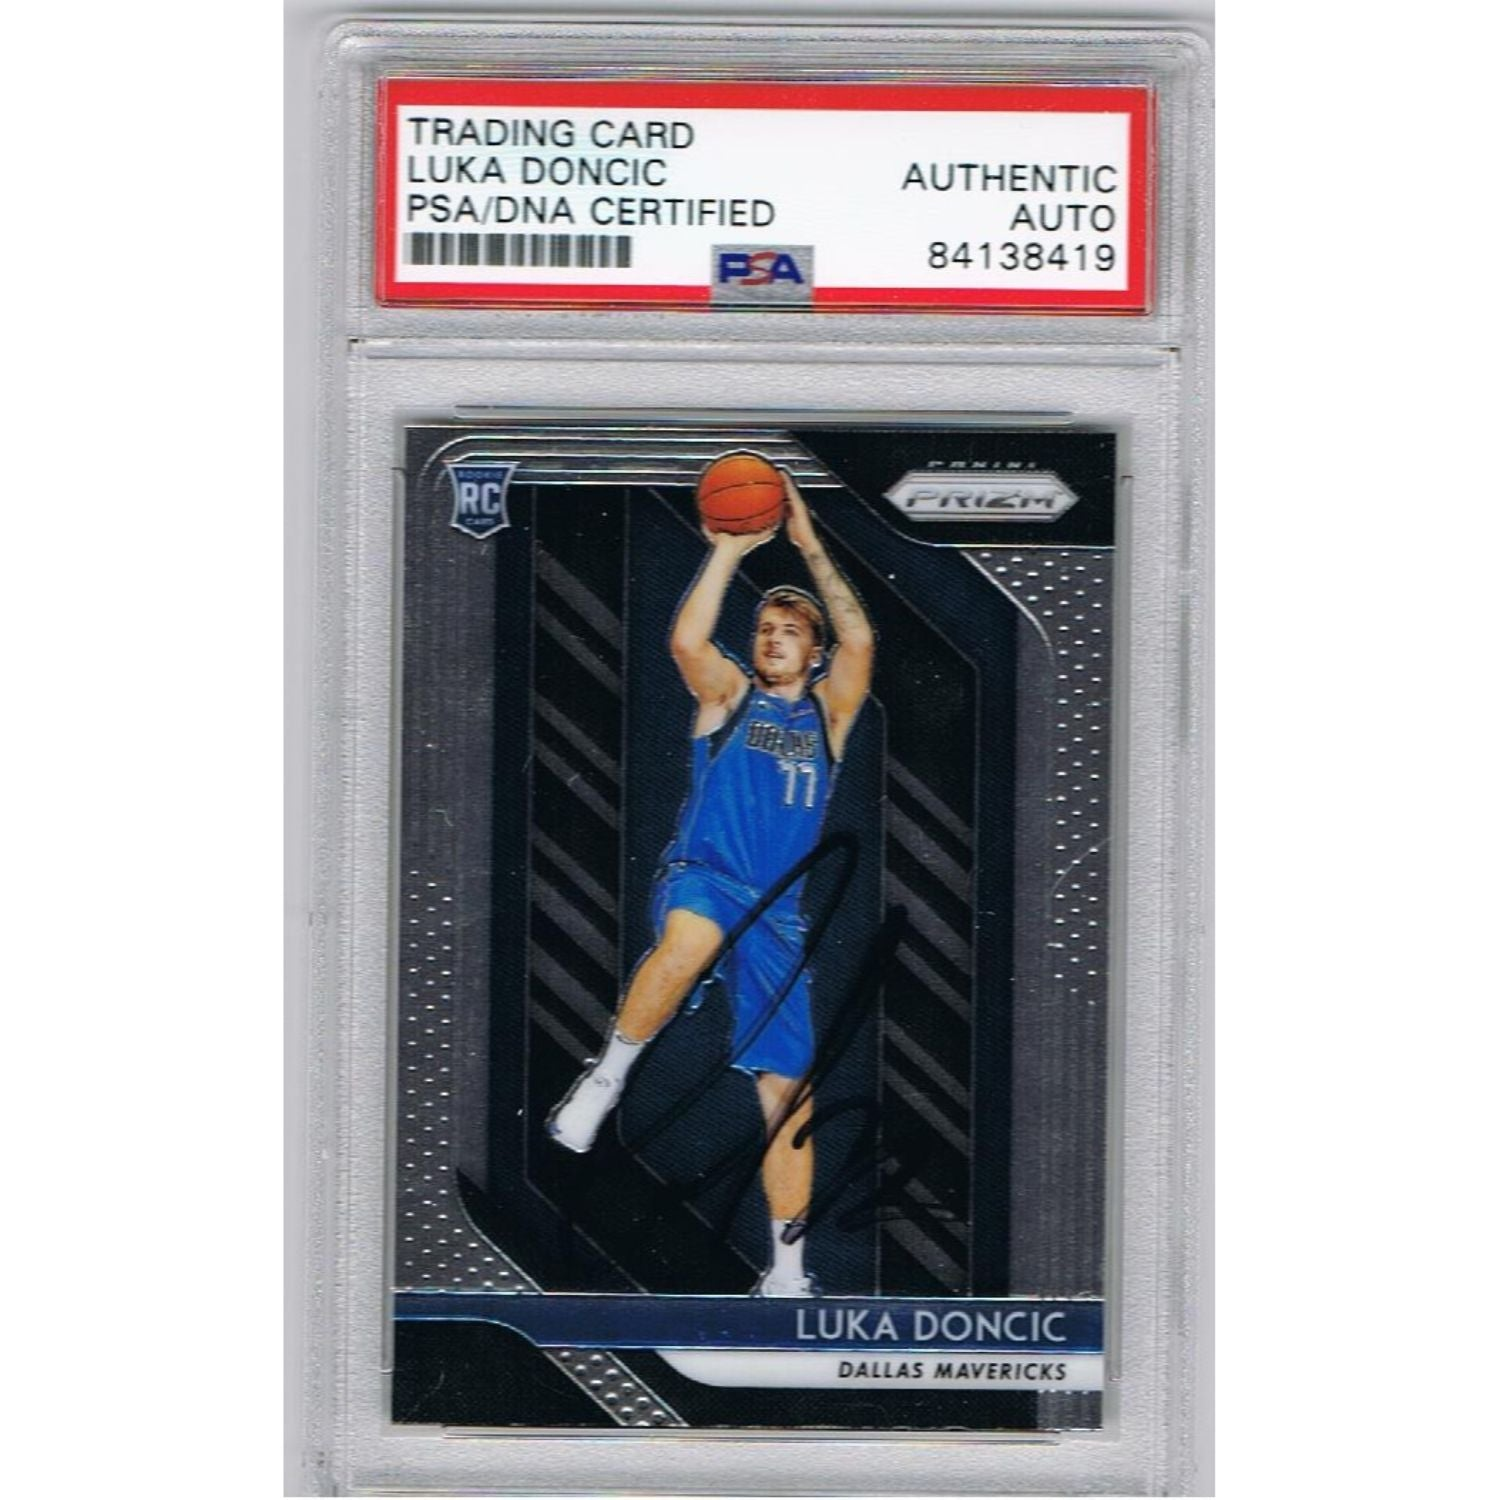 Luka Doncic Dallas Mavericks Autographed Panini Prizm Signed Basketball Rookie Trading Card RC PSA DNA-Powers Sports Memorabilia